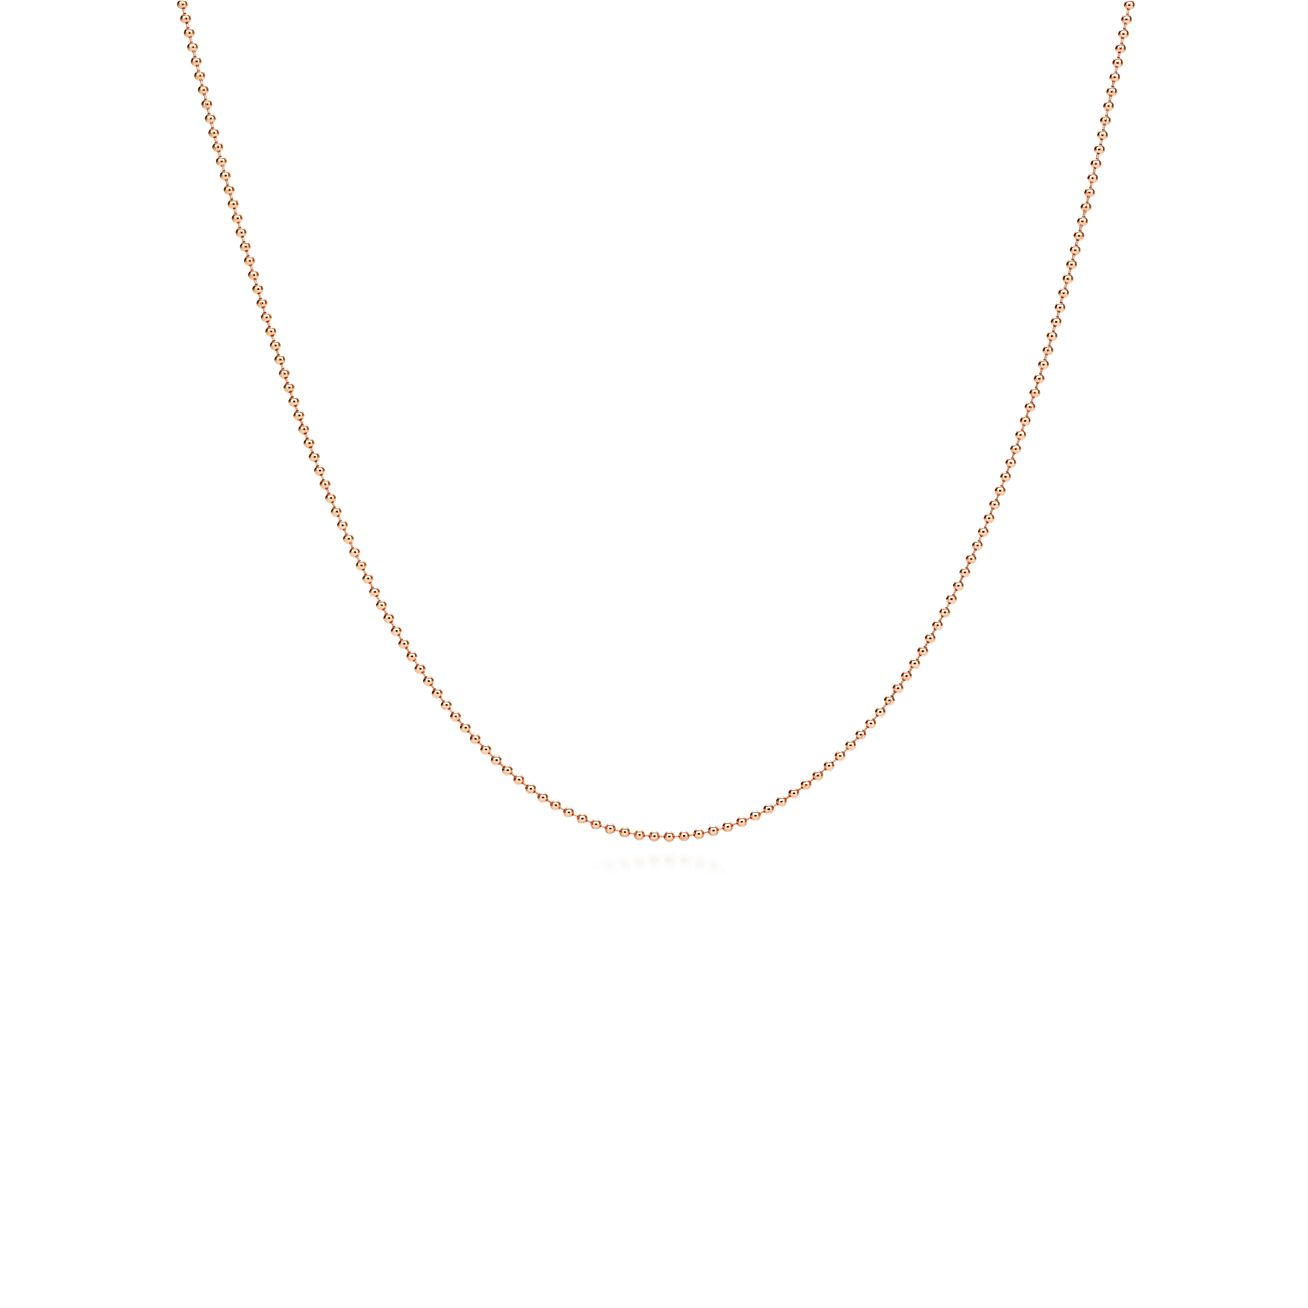 Chain in 18k rose gold - Size 30 in Tiffany & Co.